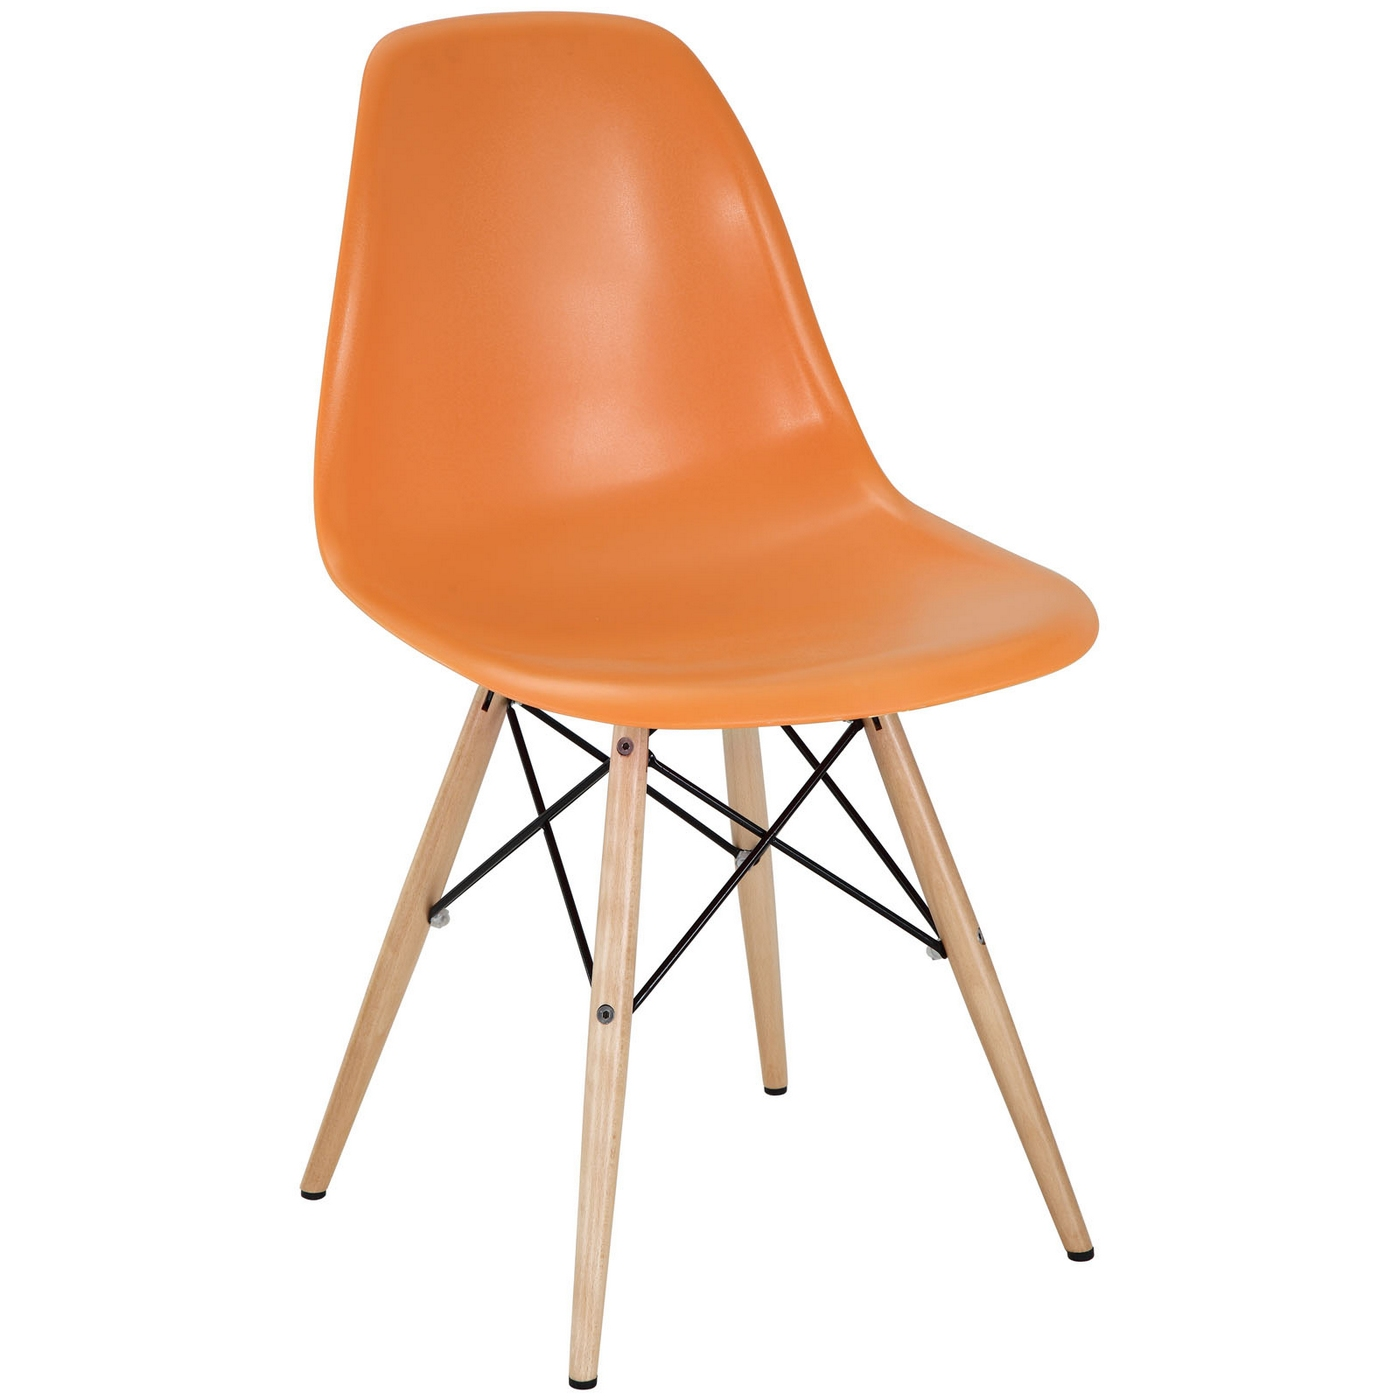 pyramid modern plastic side chair with wood legs steel accents orange. Black Bedroom Furniture Sets. Home Design Ideas